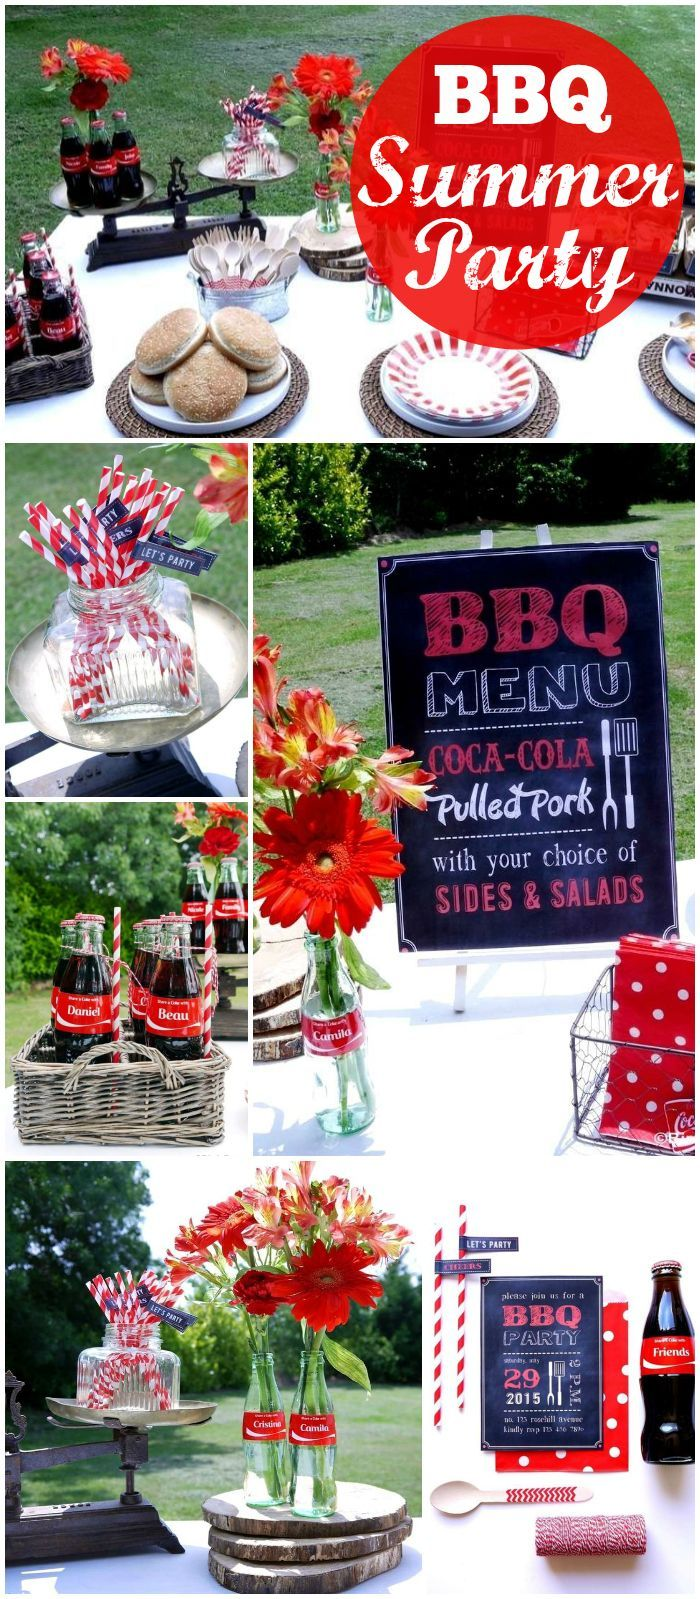 25+ best ideas about Picnic Party Themes on Pinterest | Picnic party decorations, Picnic theme birthday and Gingham party